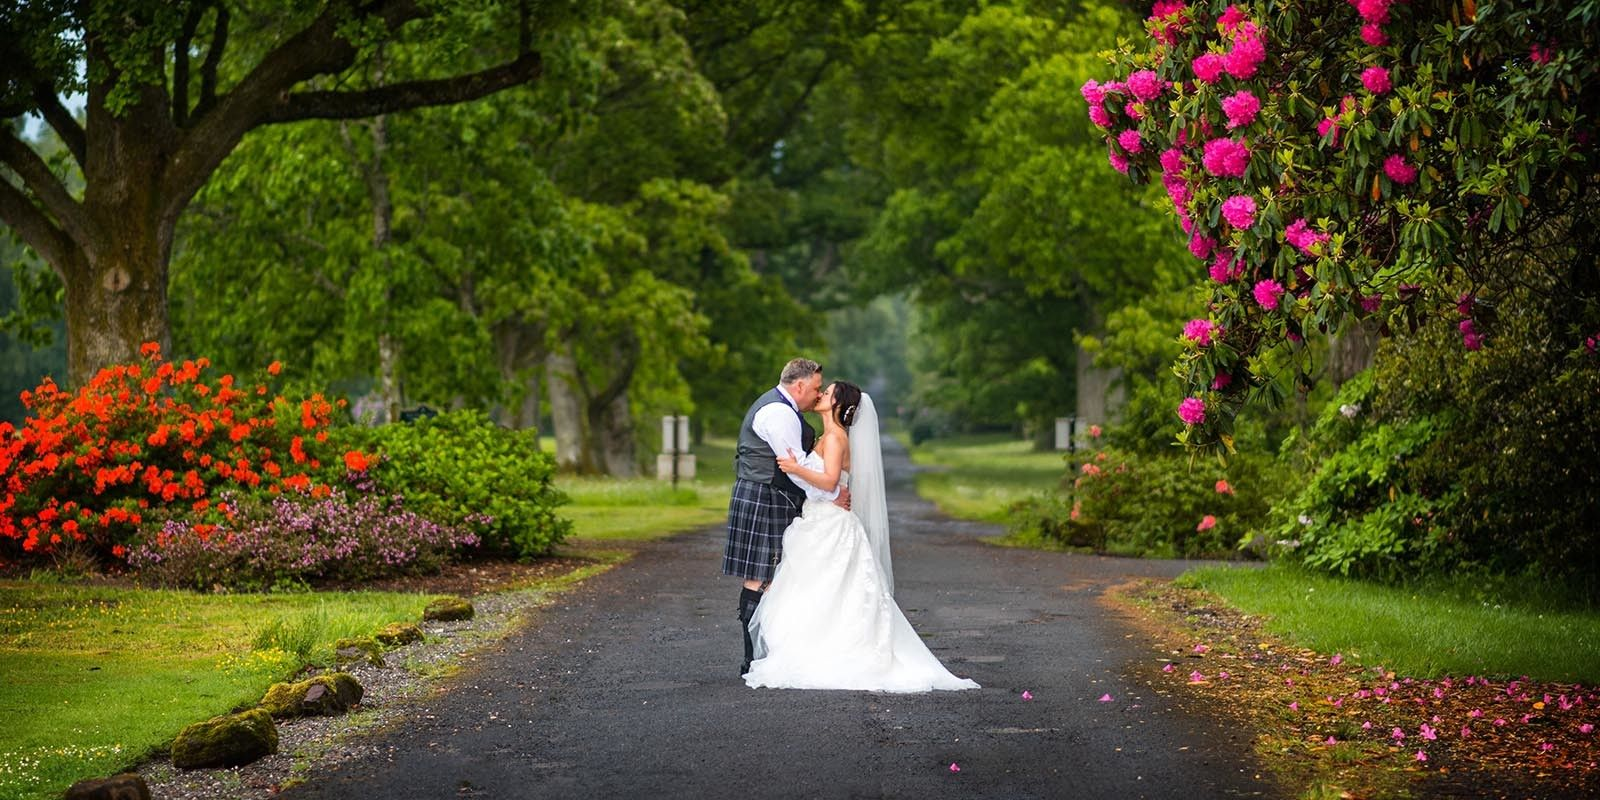 Creative, natural and elegant wedding photography by Glasgow Wedding Photographer Ian Arthur